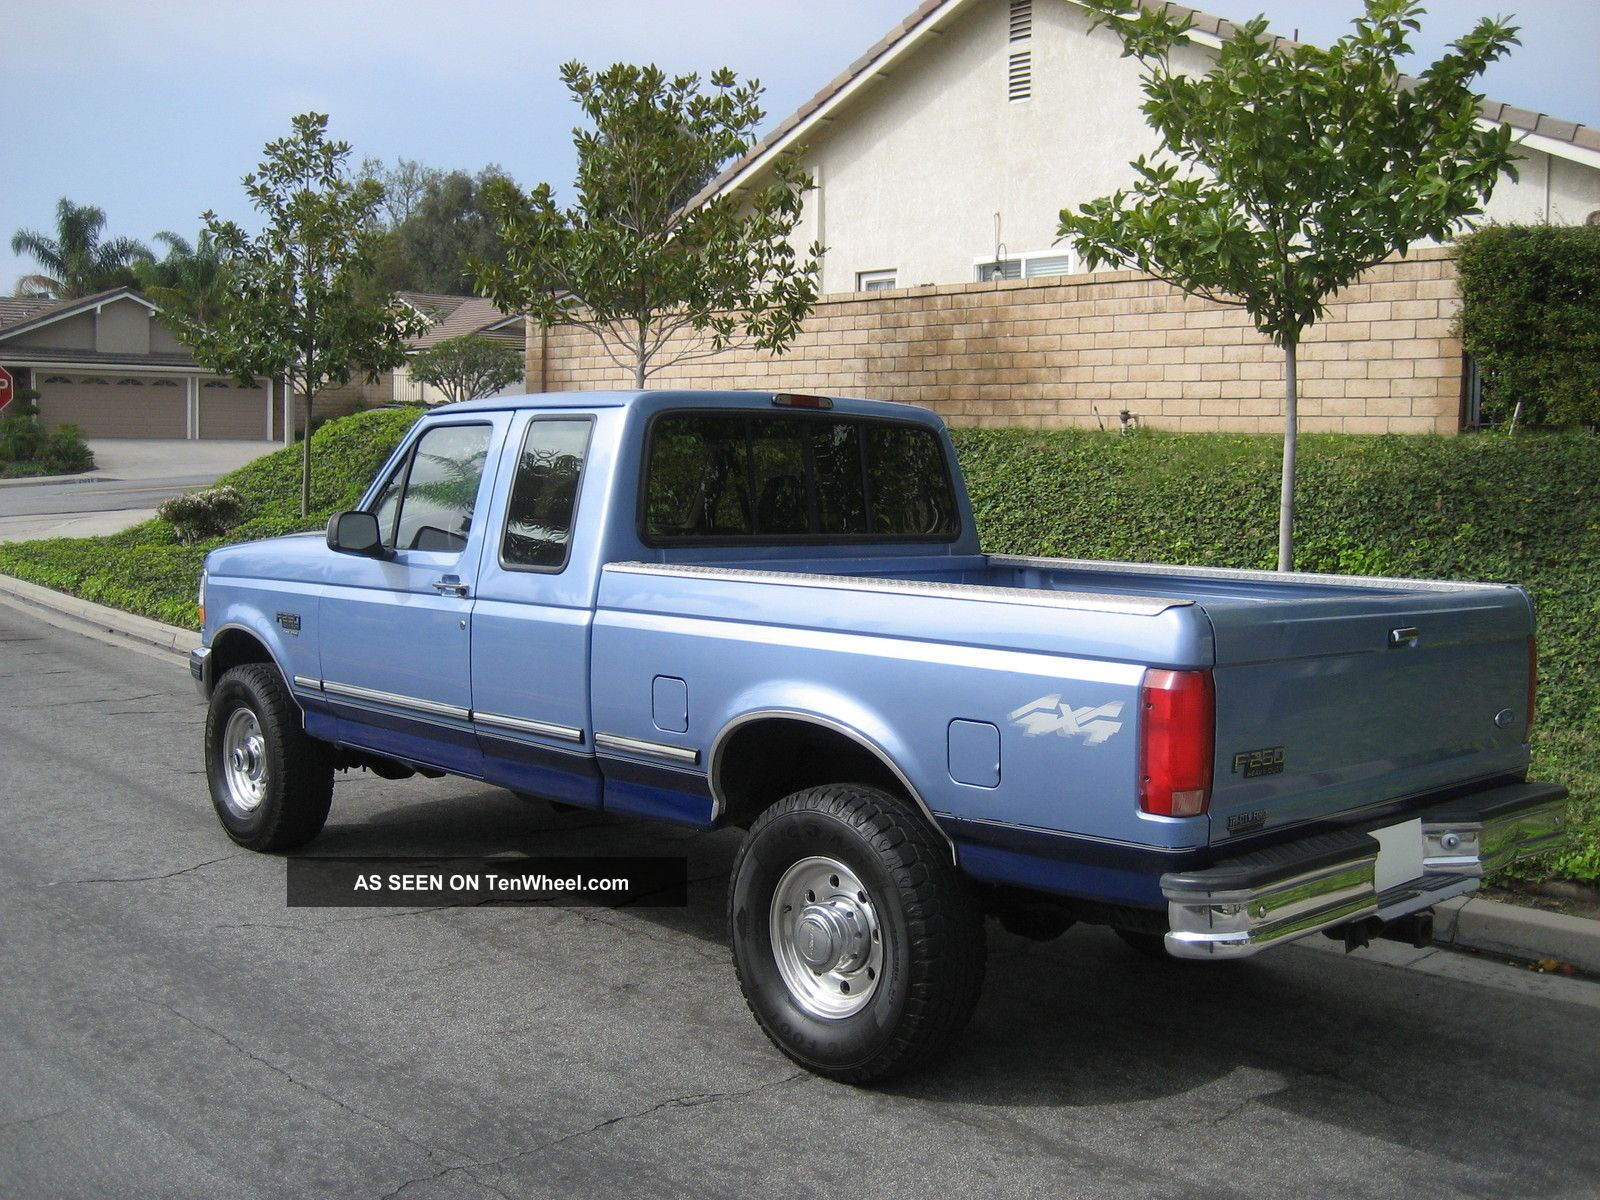 1997 ford f 250 extended cab short bed 4x4 turbo. Black Bedroom Furniture Sets. Home Design Ideas